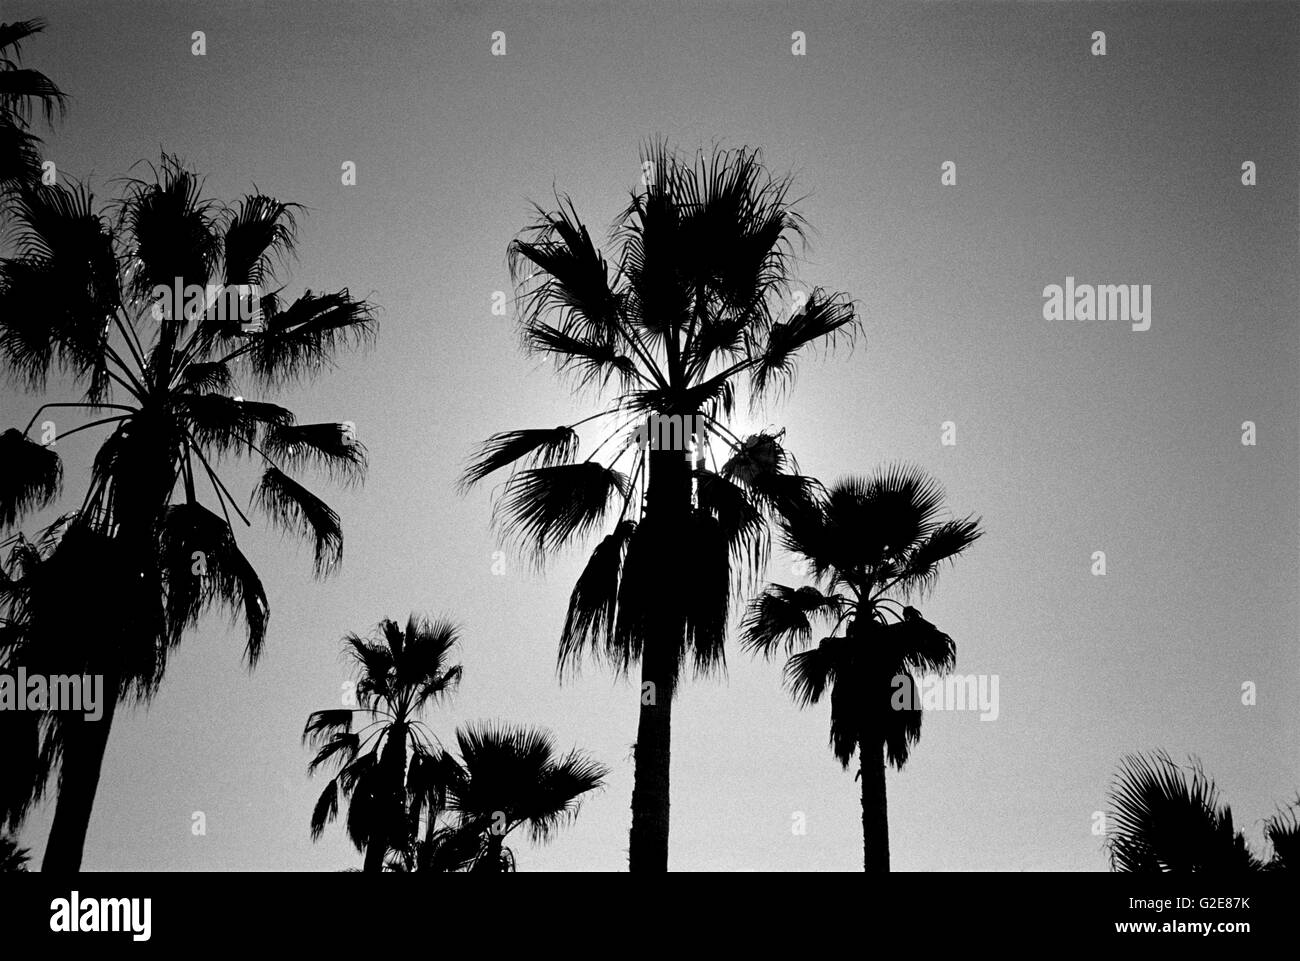 Palm Trees Silhouette, Low Angle View - Stock Image